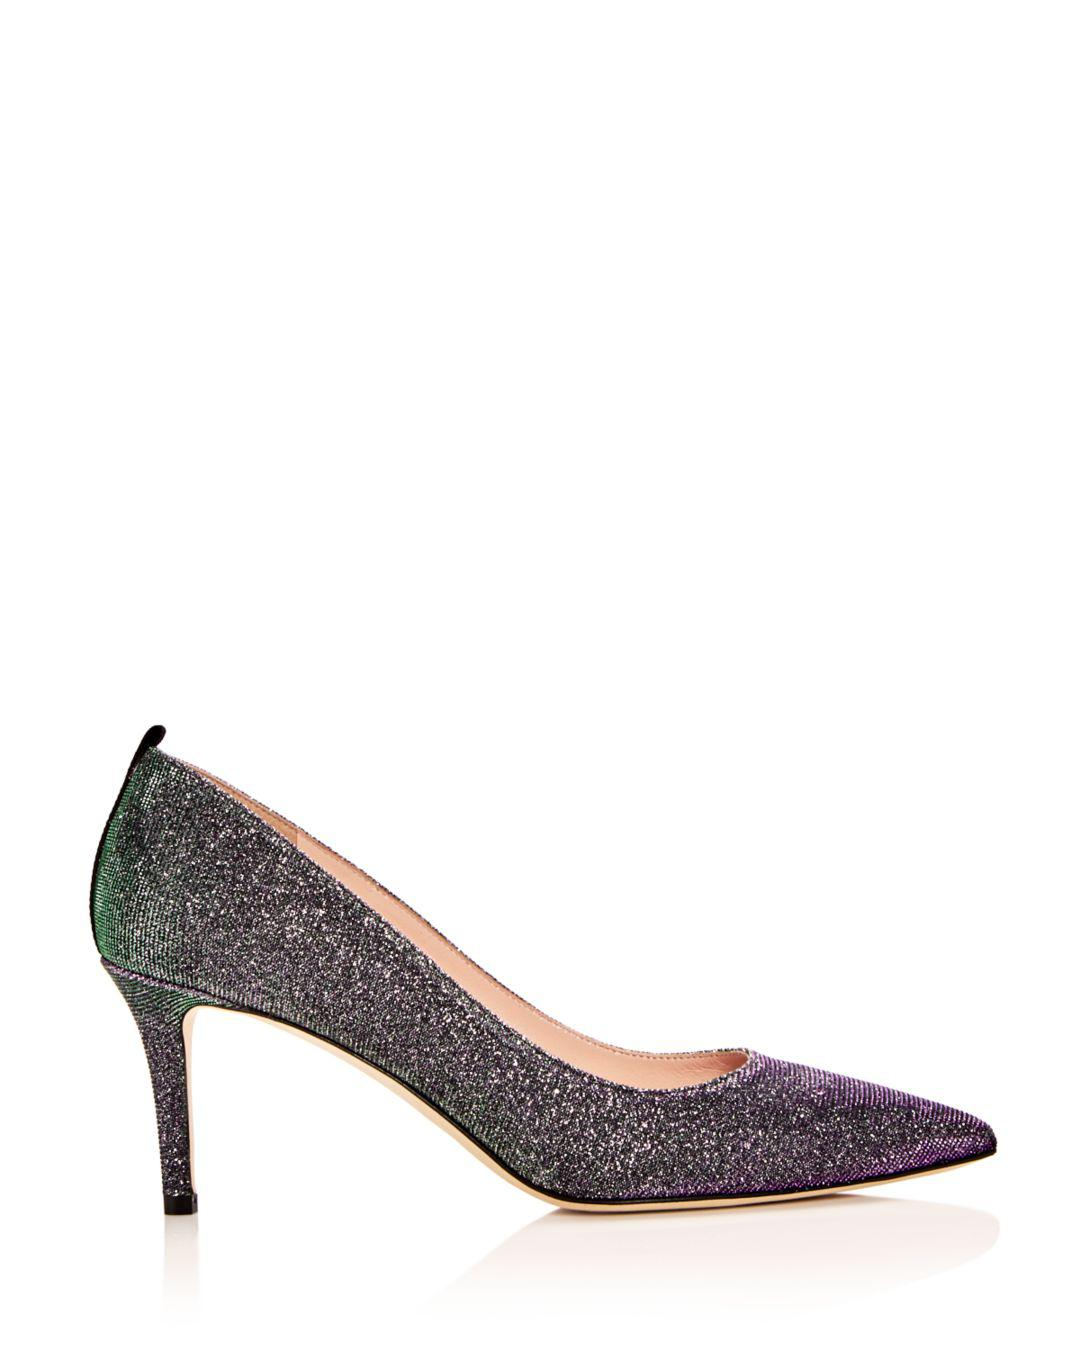 4ae8278686 Gallery. Previously sold at: Bloomingdale's · Women's Pointed Toe Pumps